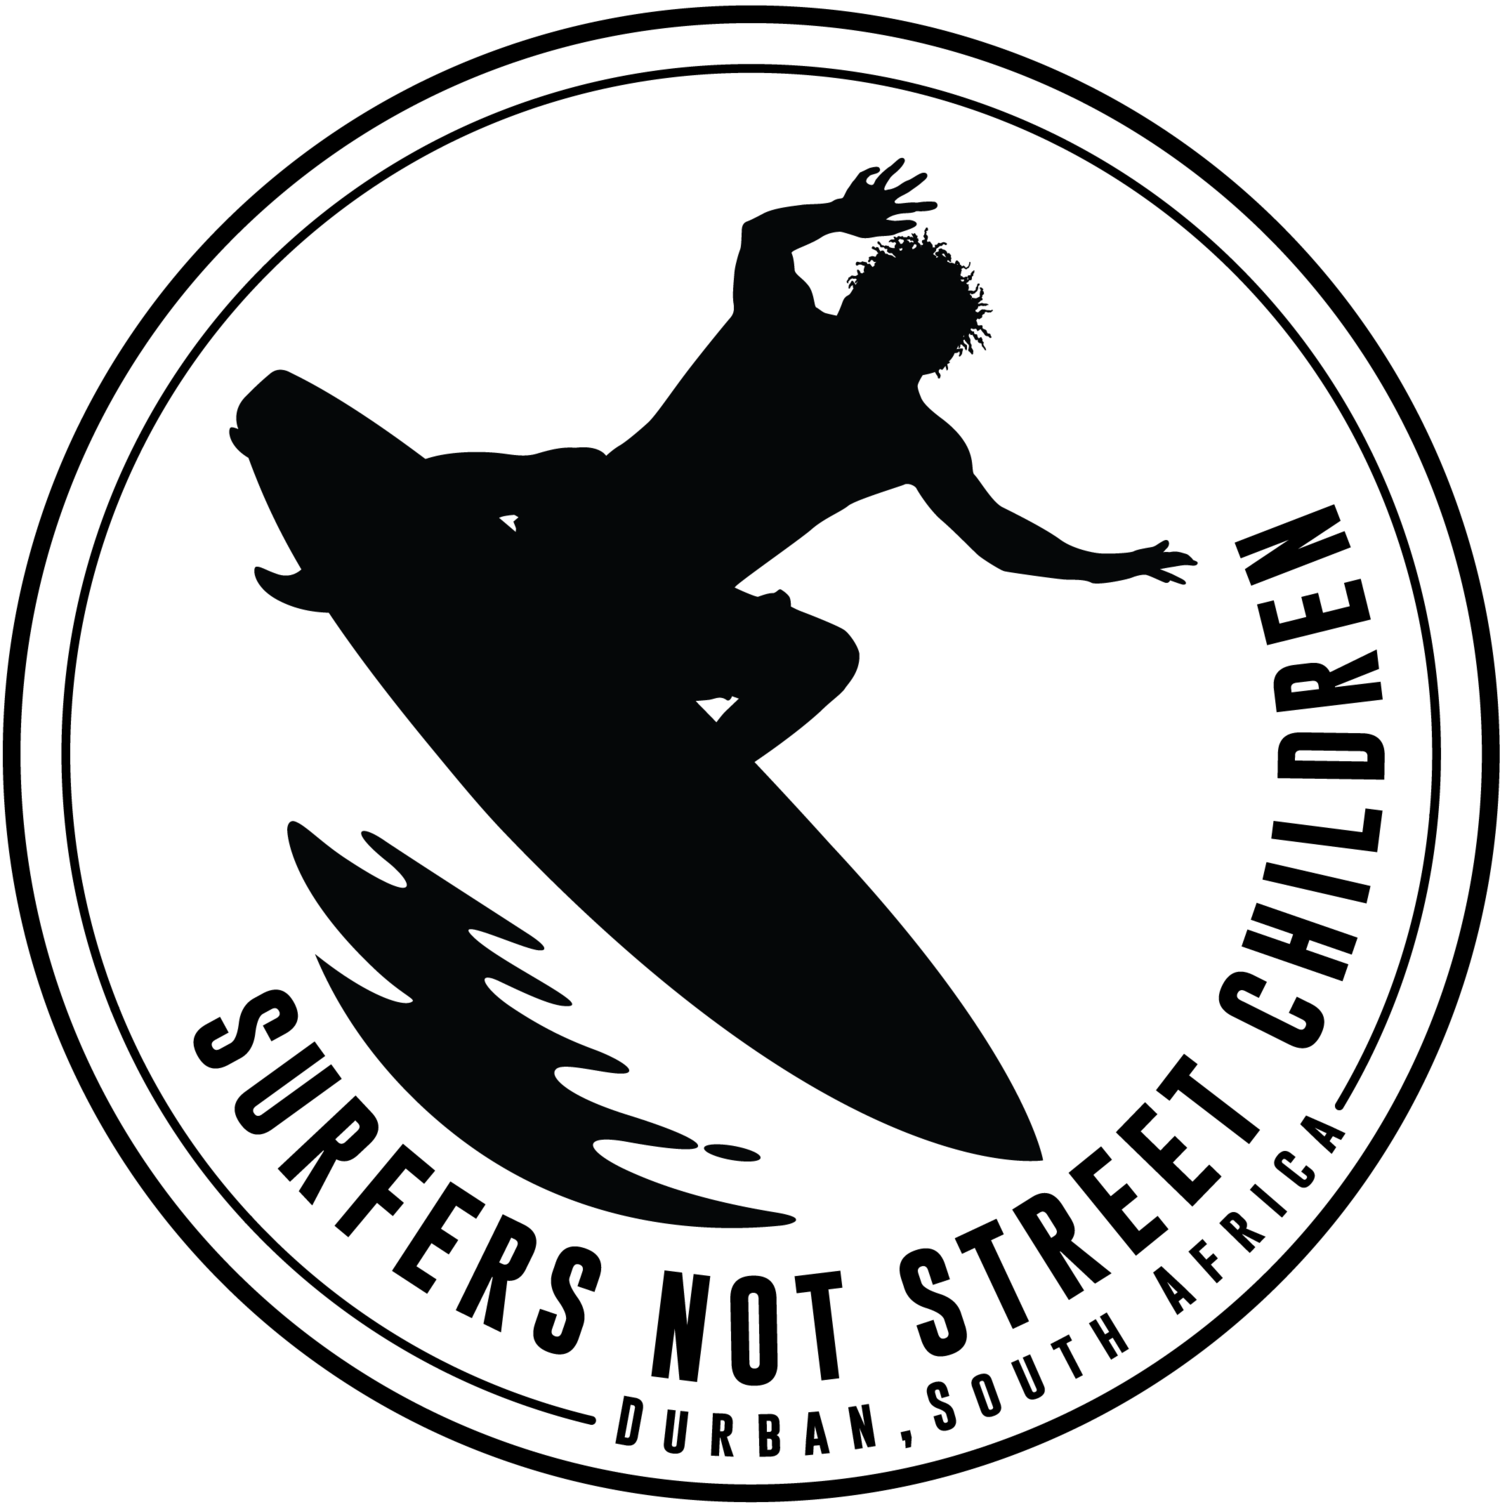 Surfers Not Street Children